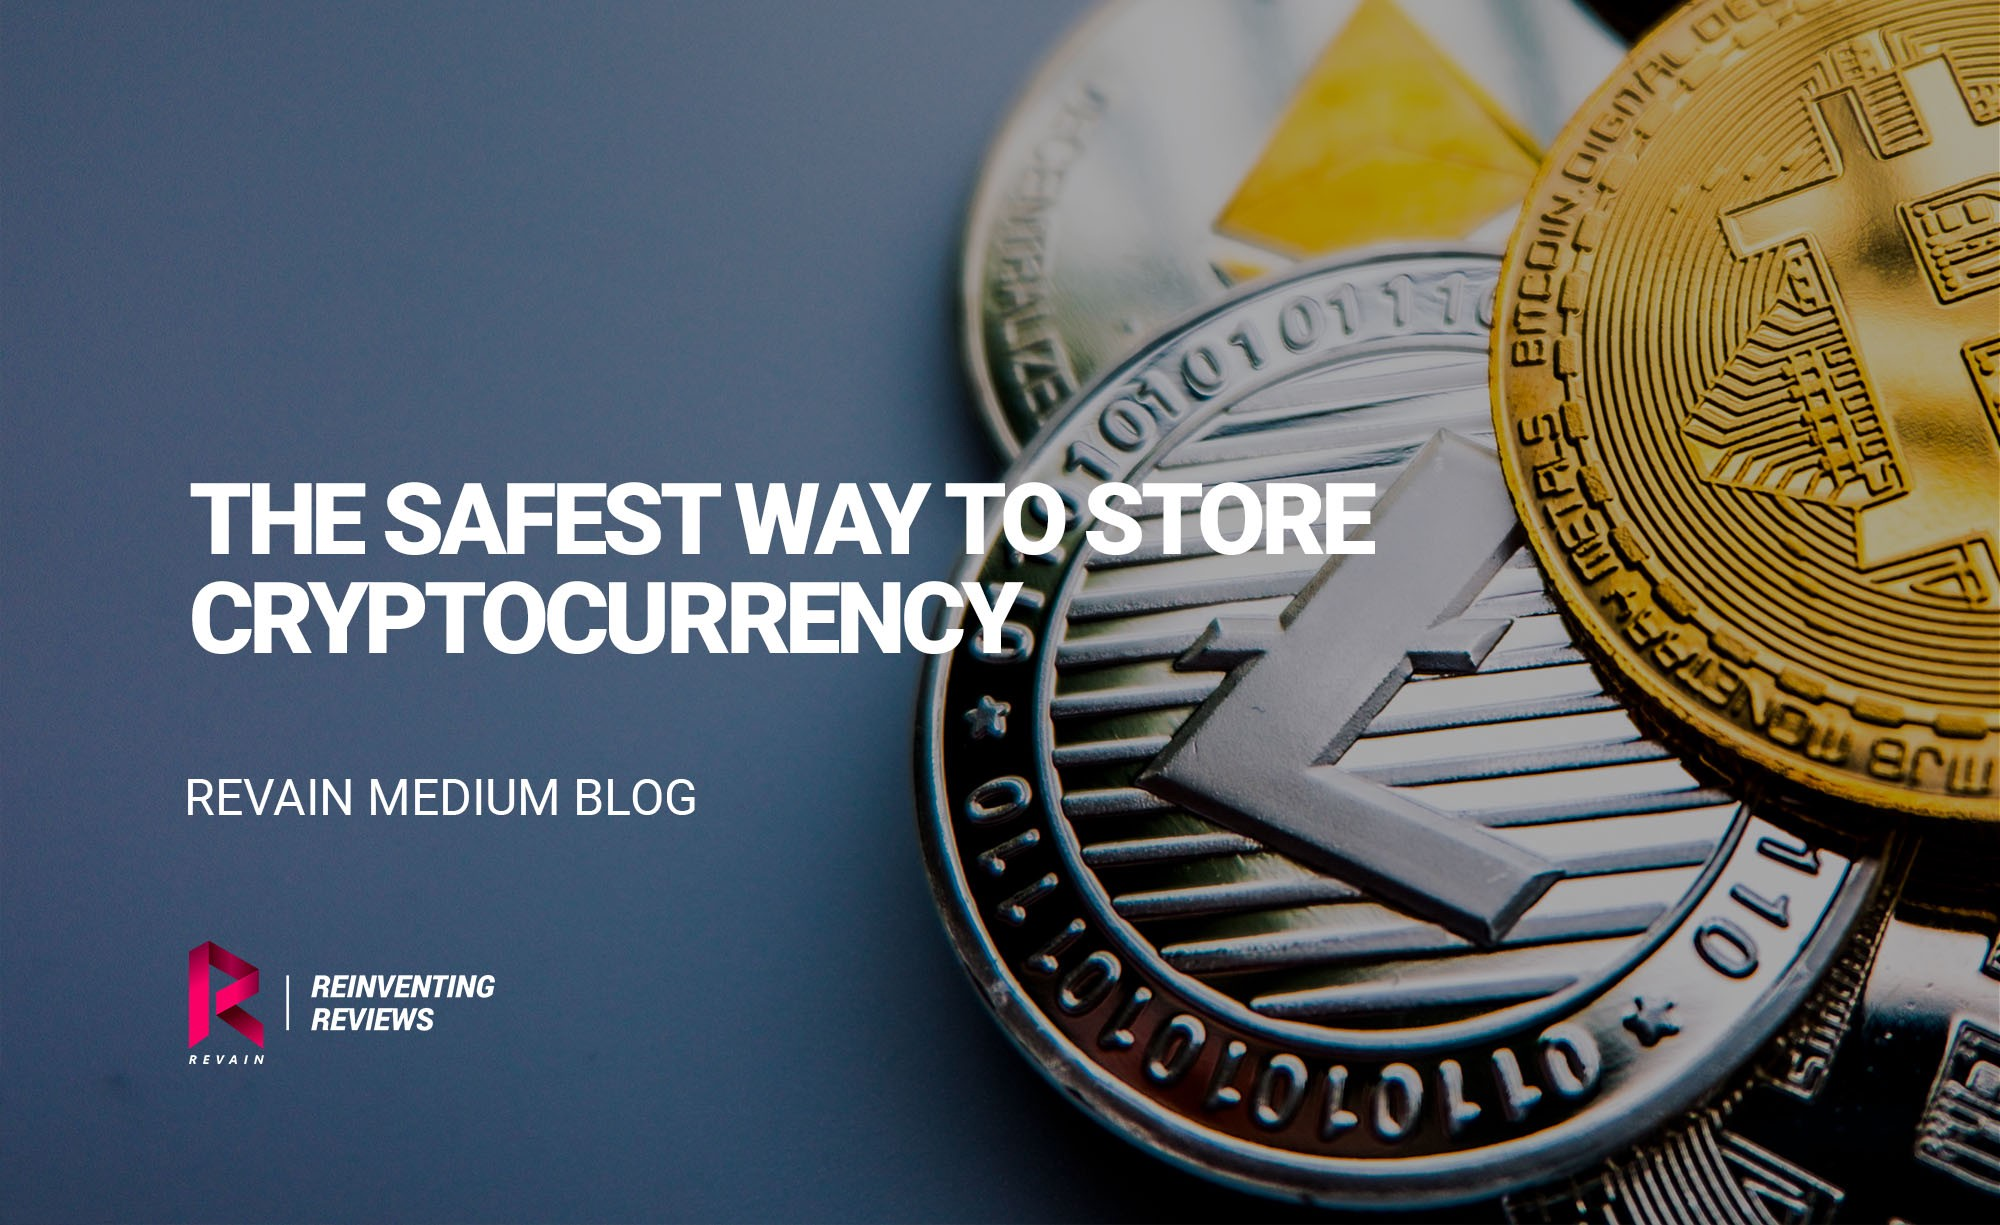 Storing cryptocurrency safely research